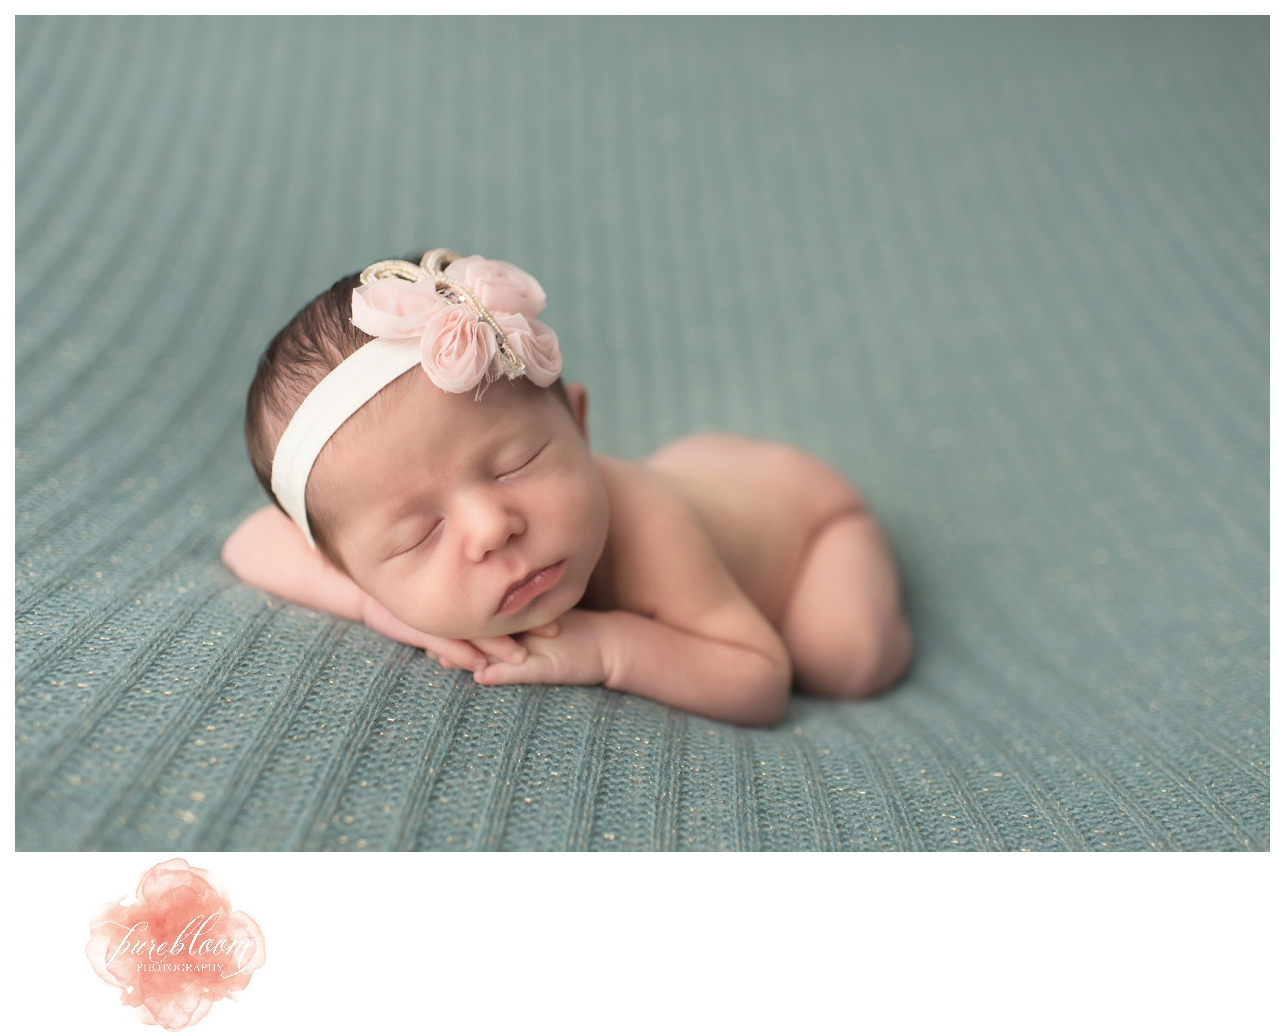 Baby Evie | Tampa Newborn Photographer | Pure Bloom Photography